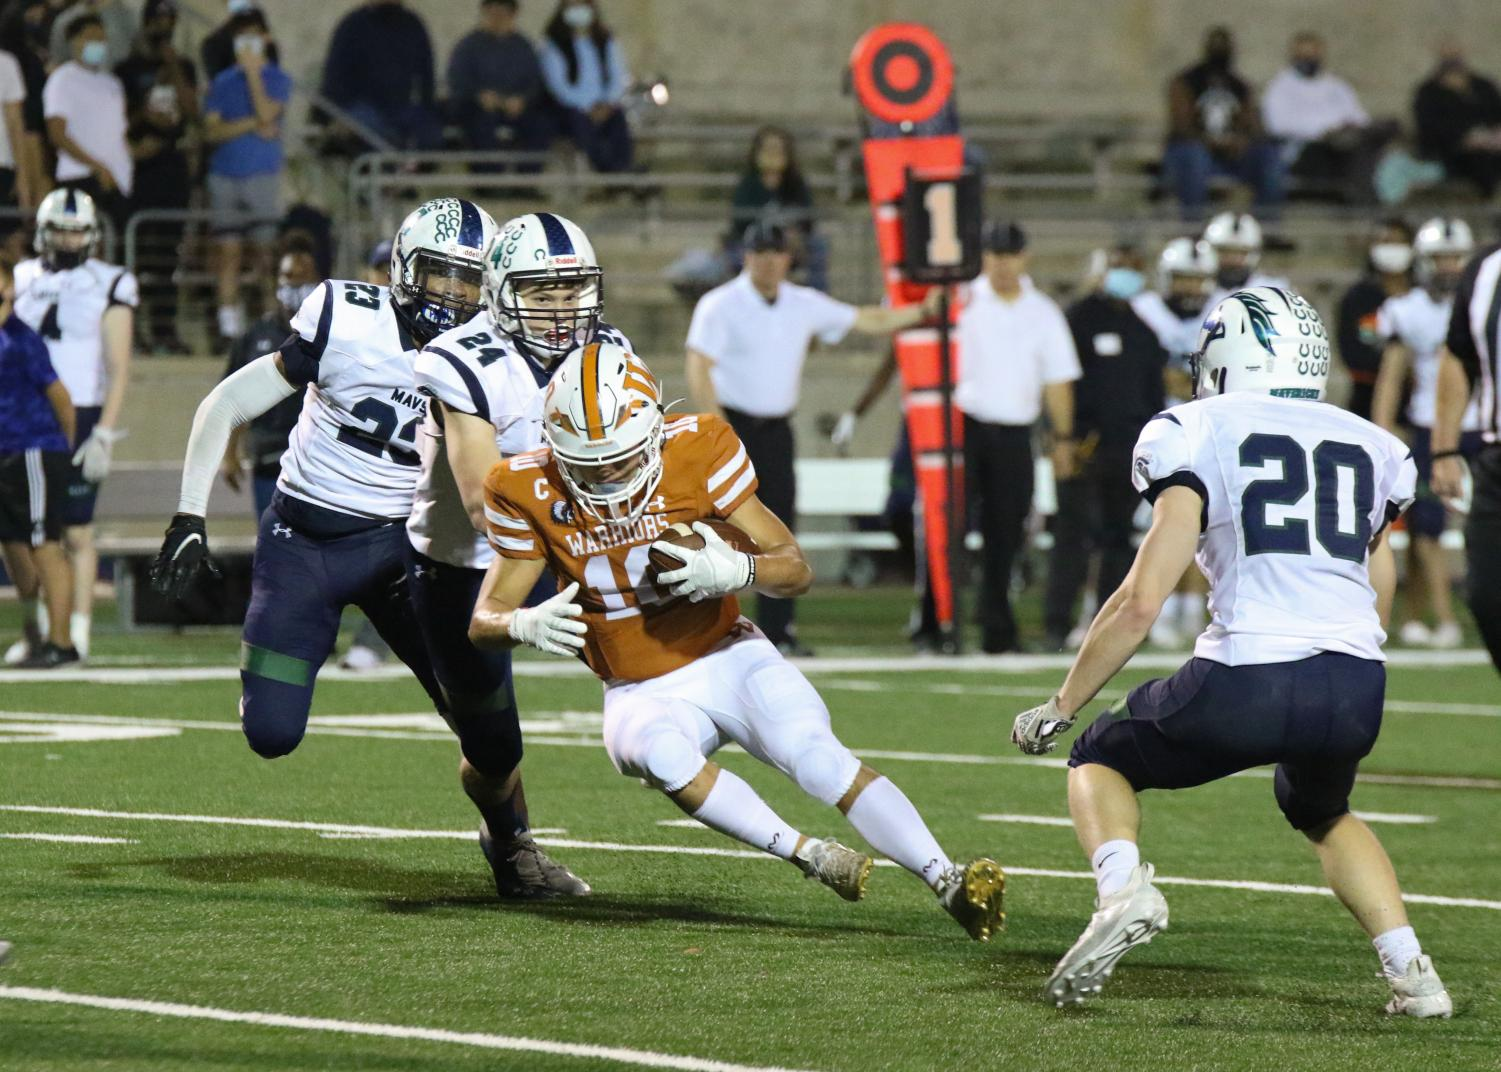 Varsity+Football+Snaps+Losing+Streak%2C+Notches+42-28+Homecoming+Win+Over+McNeil